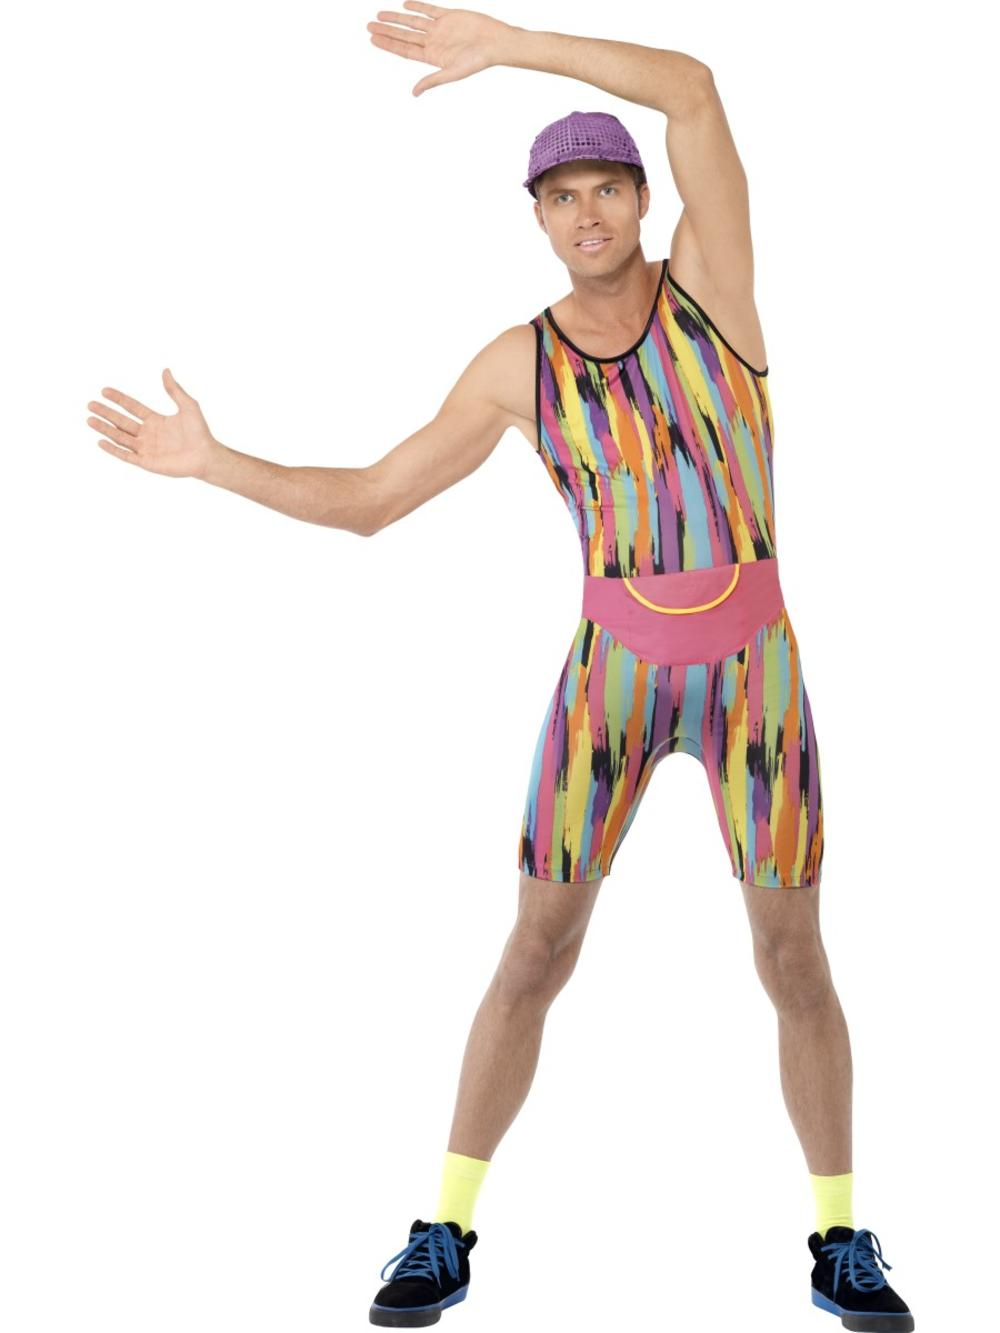 Mr Energizer Aerobics Instructor Mens Fancy Dress Sports Adults Costume Outfit